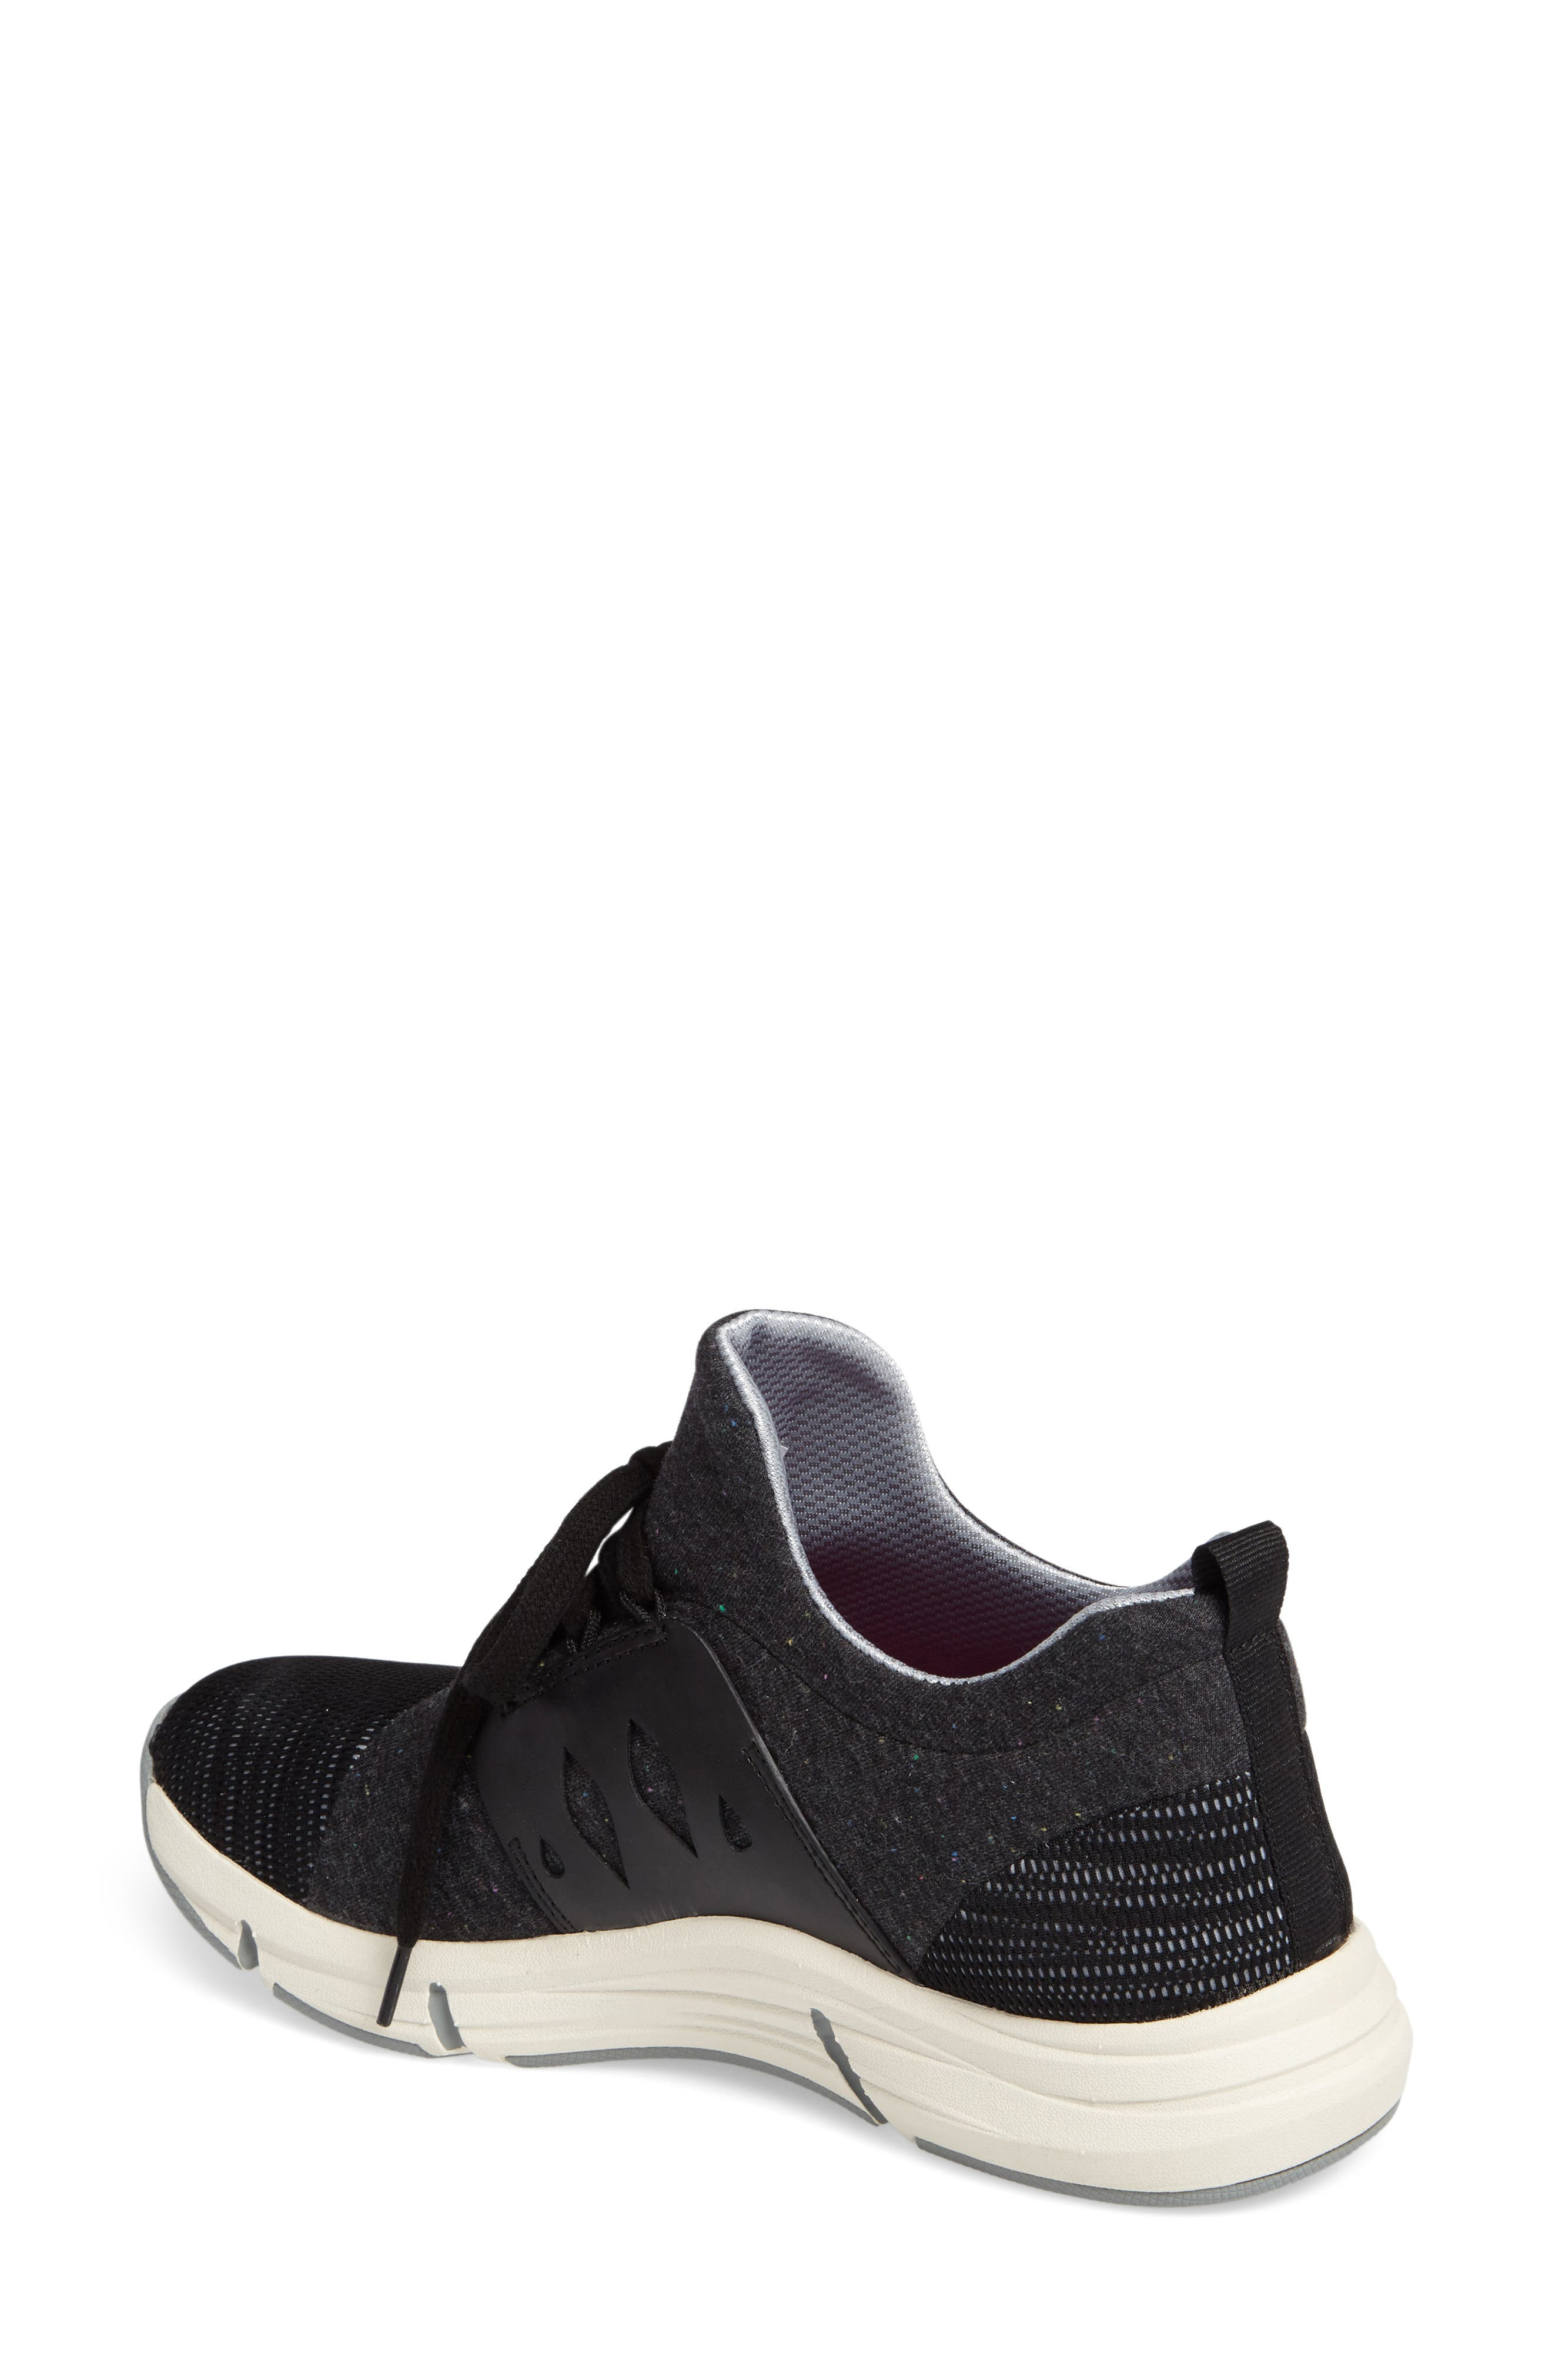 BIONICA, Ordell Sneaker, Alternate thumbnail 2, color, BLACK FABRIC